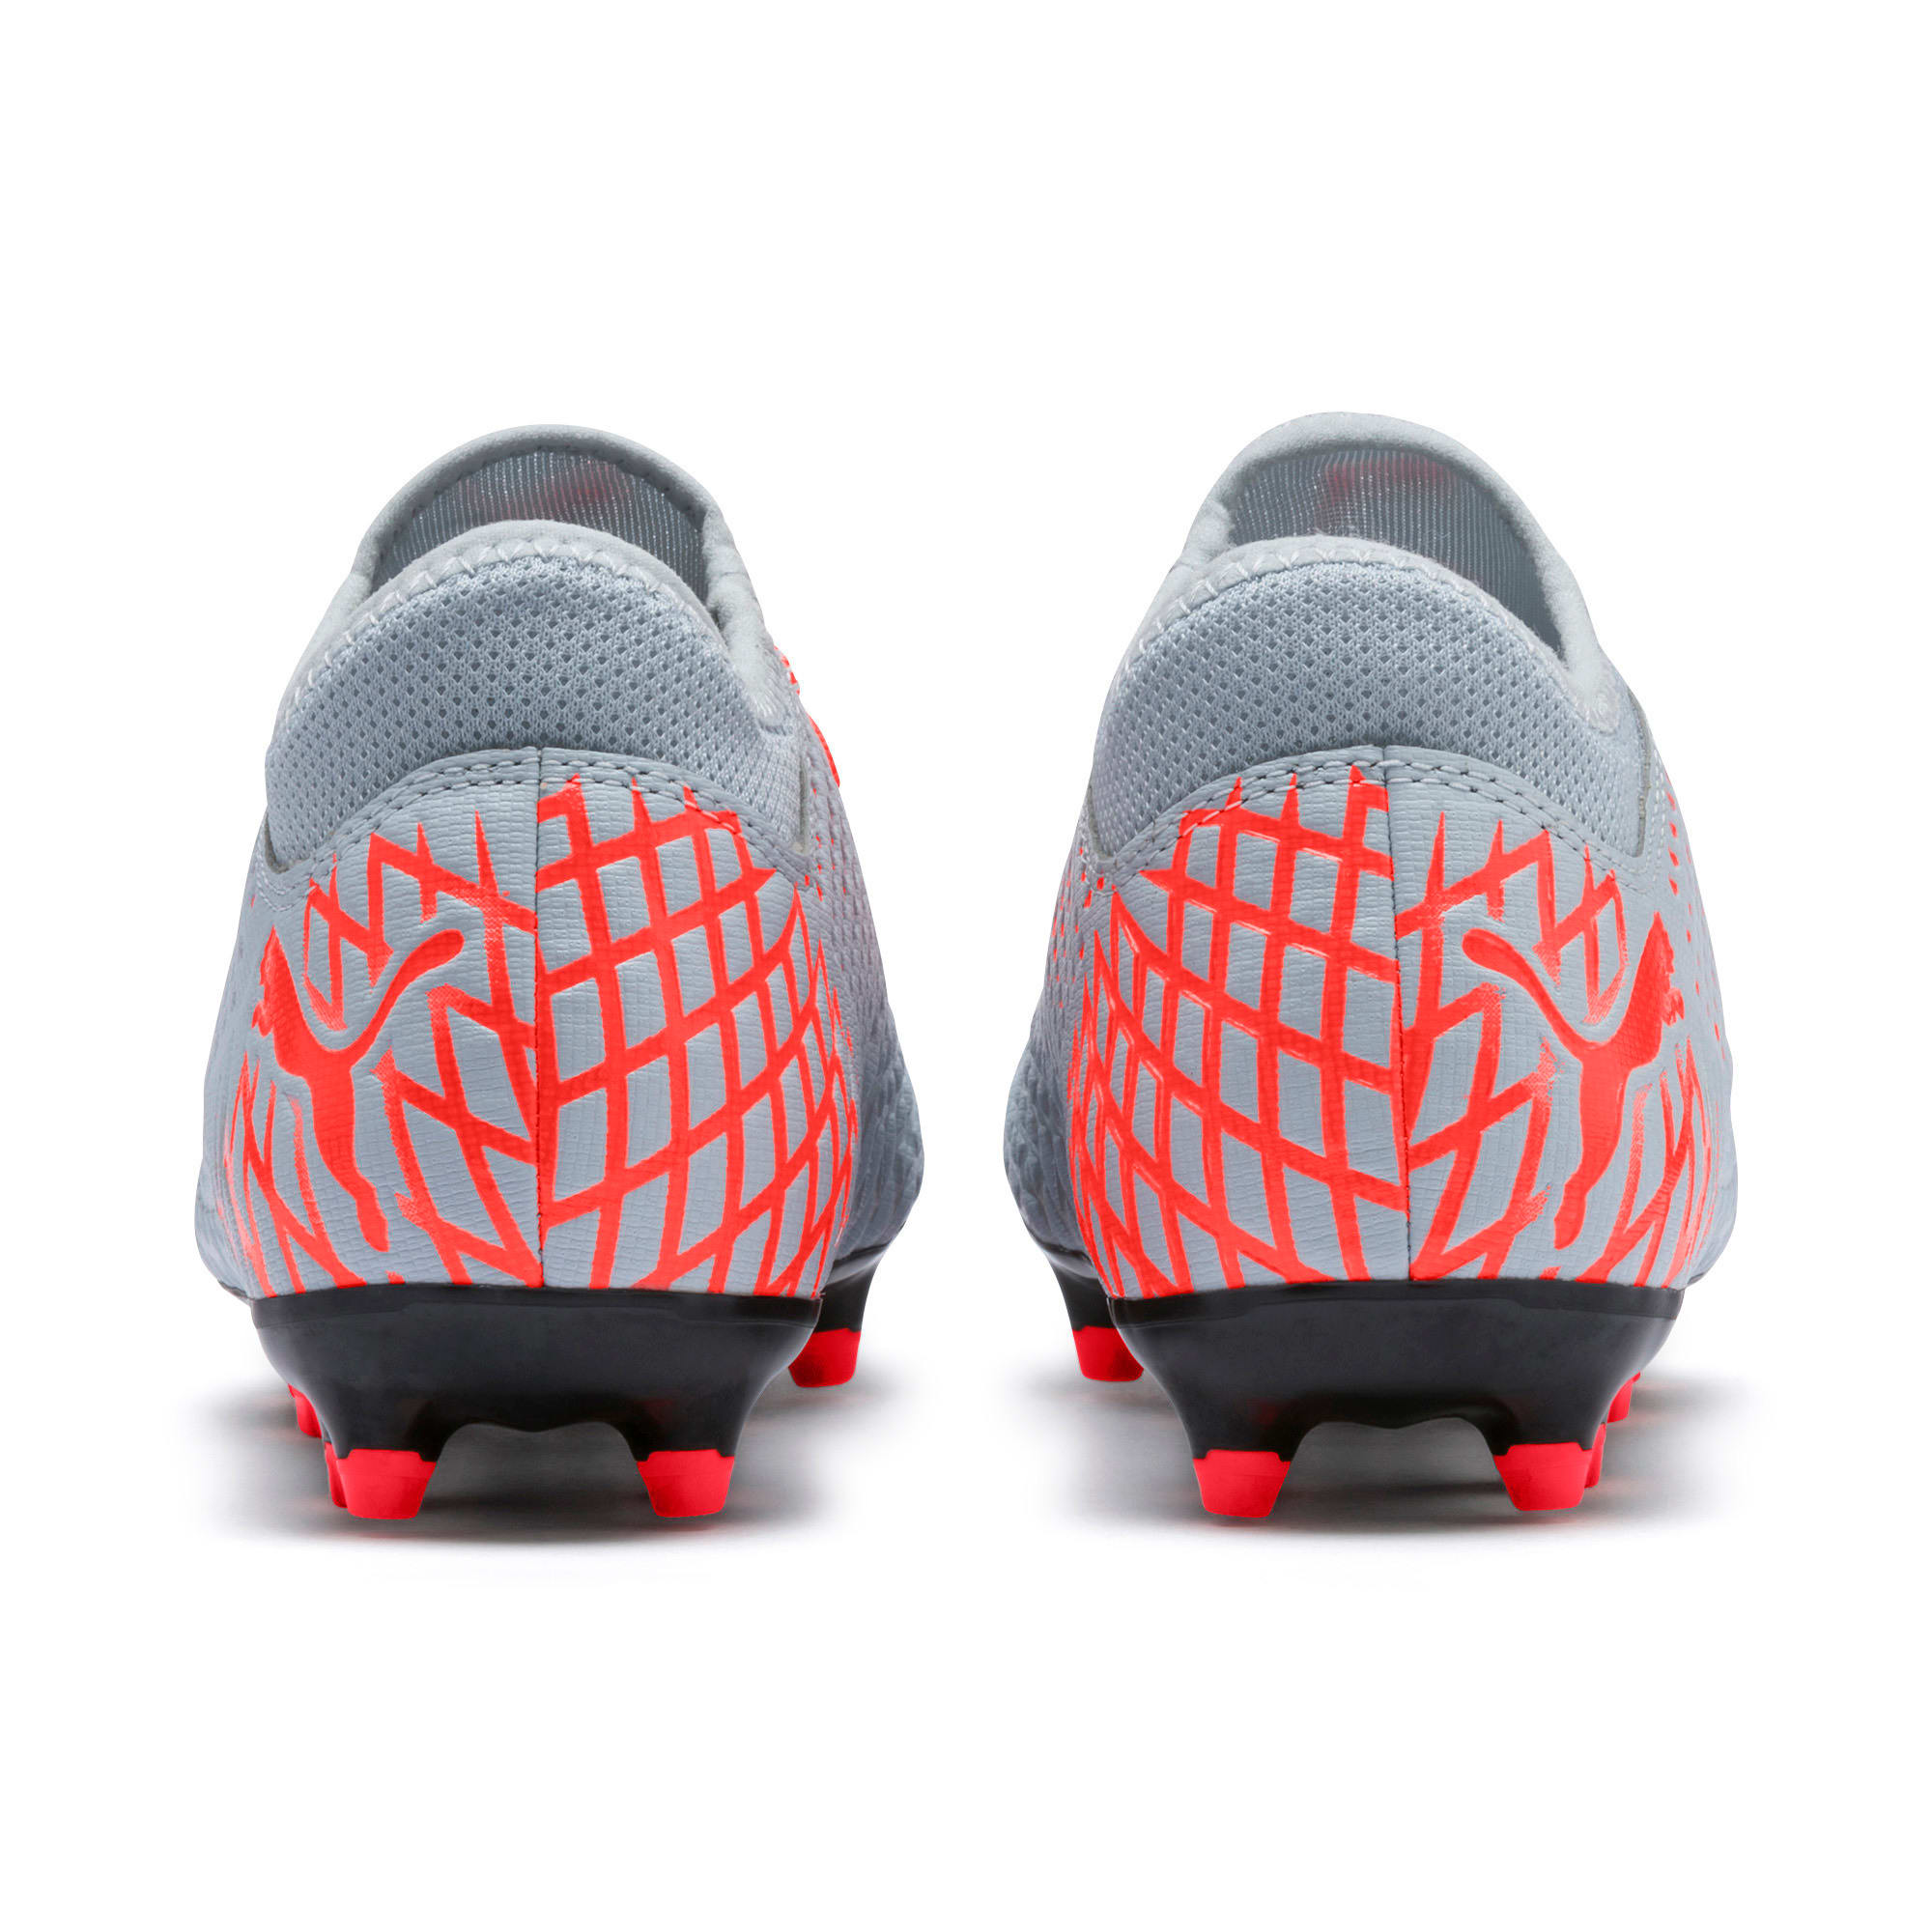 Thumbnail 3 of FUTURE 4.4 Youth Football Boots, Glacial Blue-Nrgy Red, medium